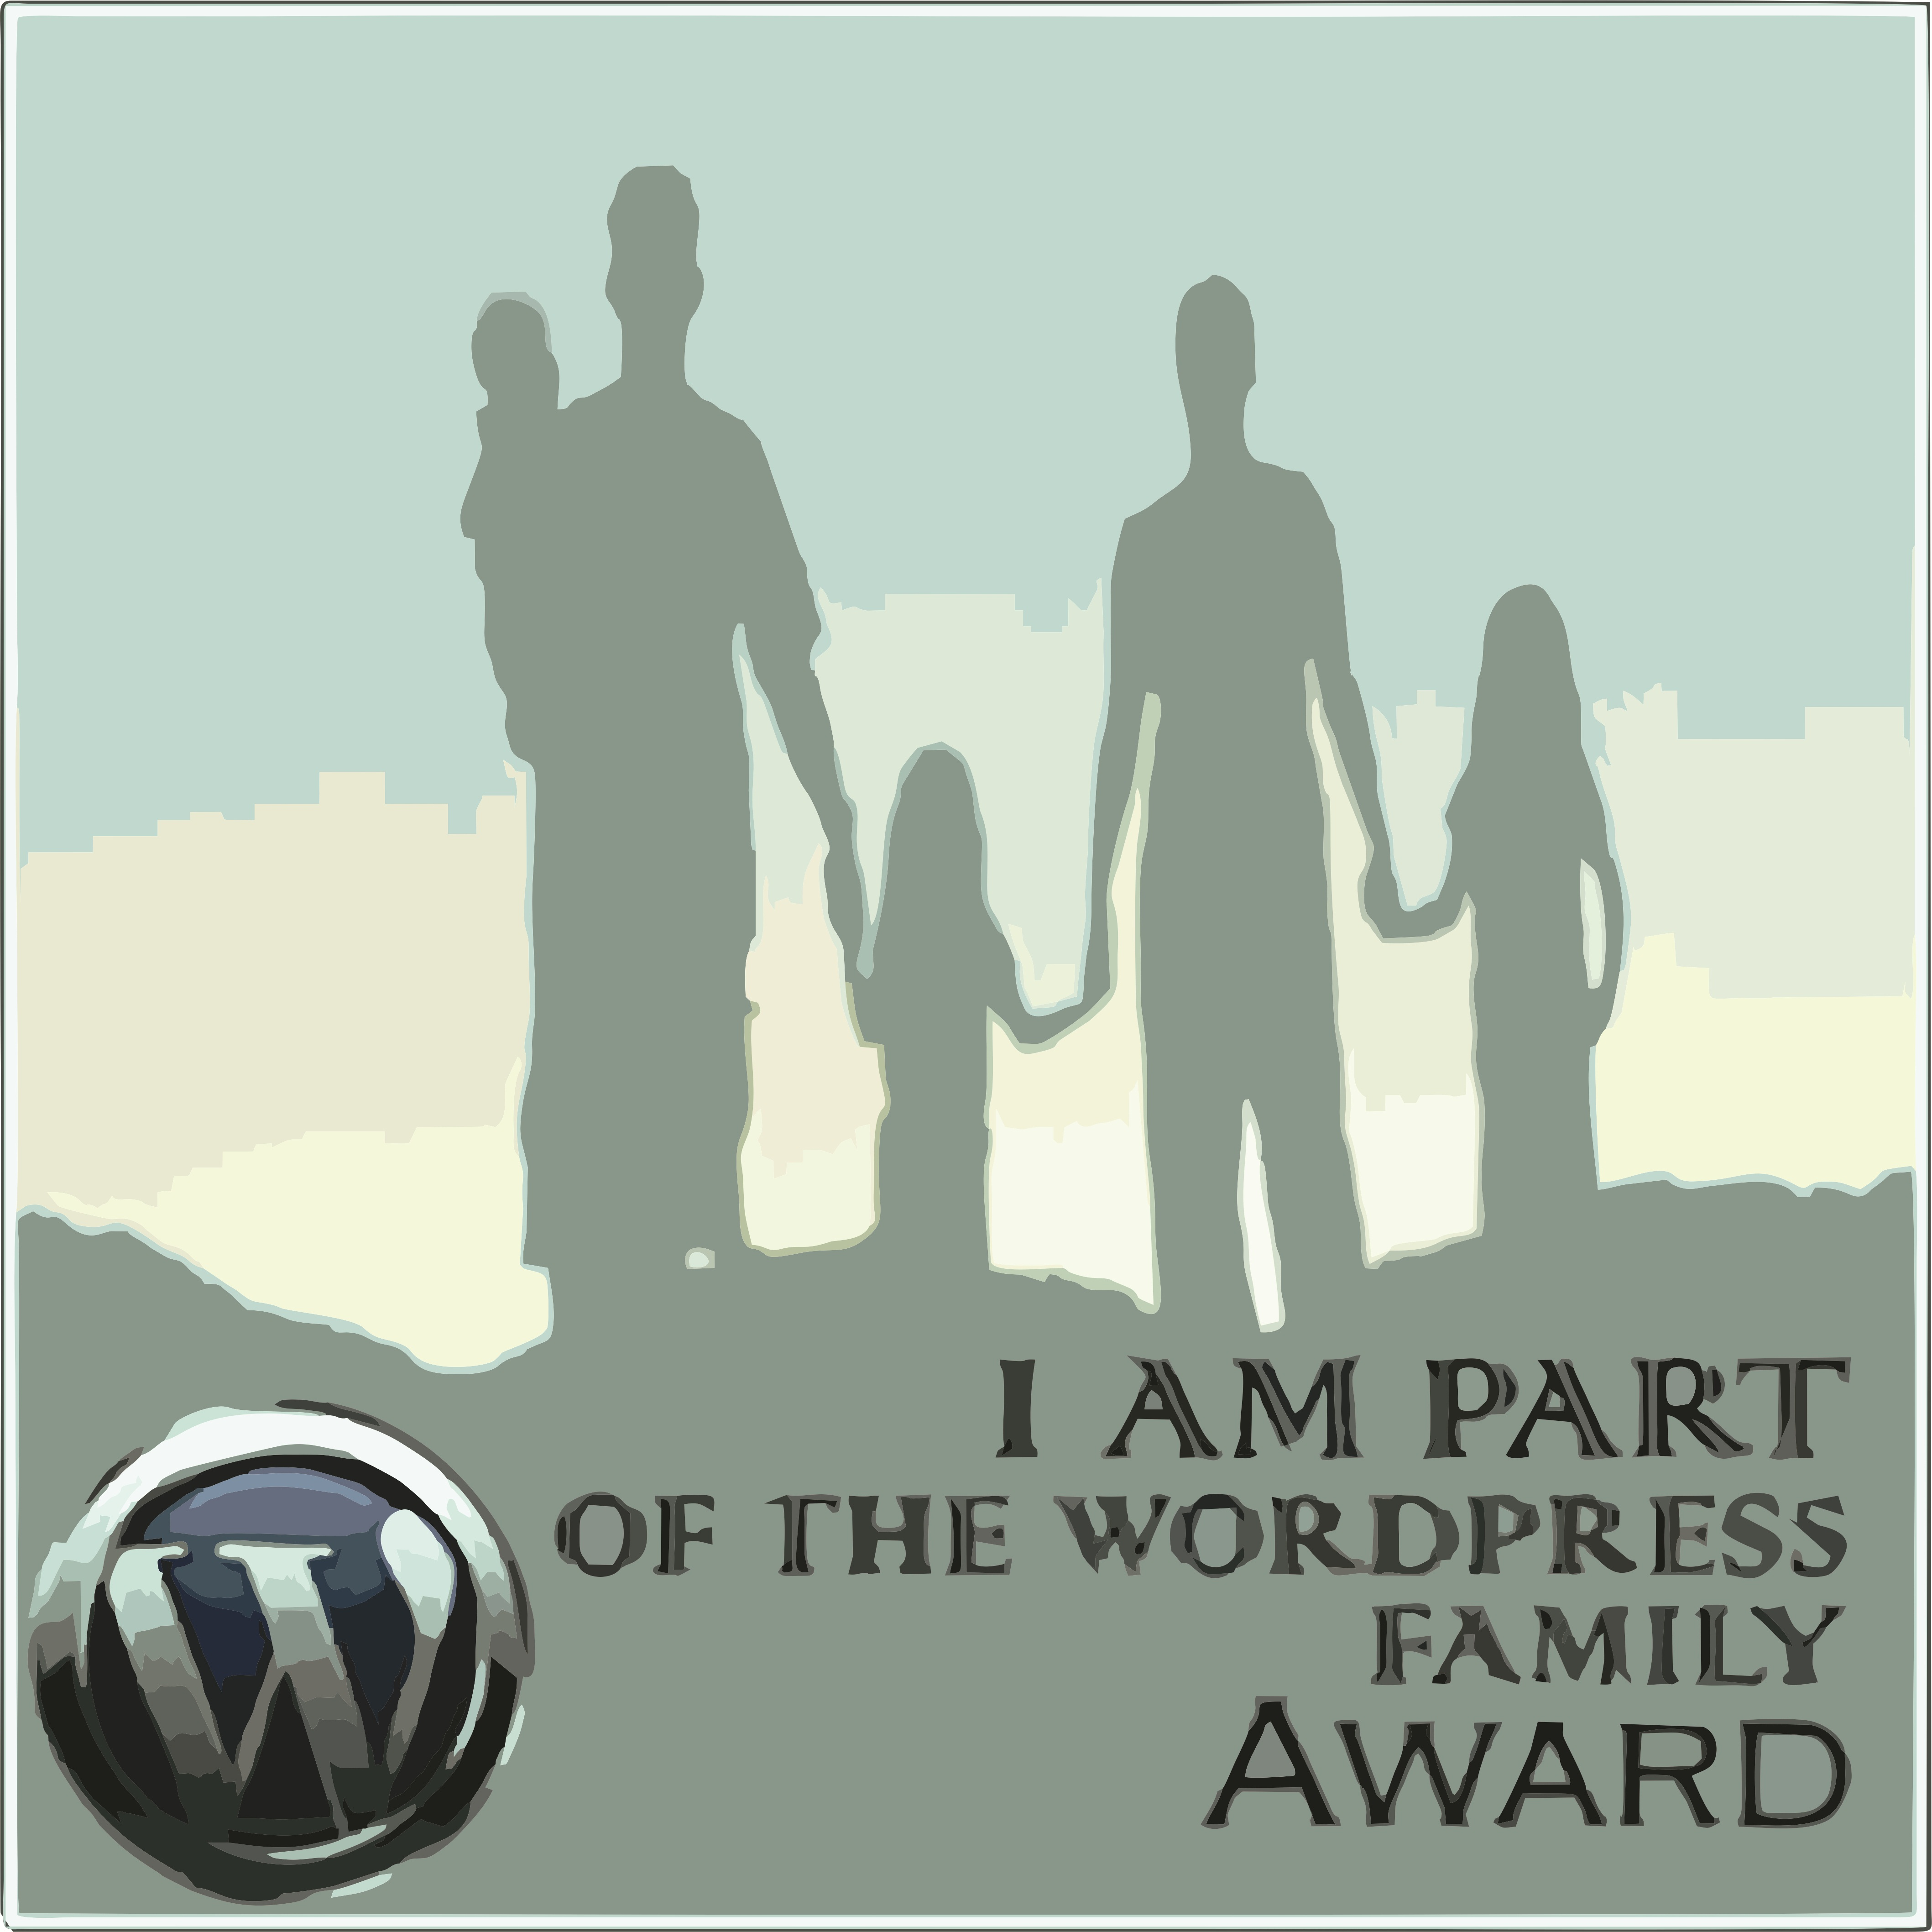 I am part of Wordpress Family Award